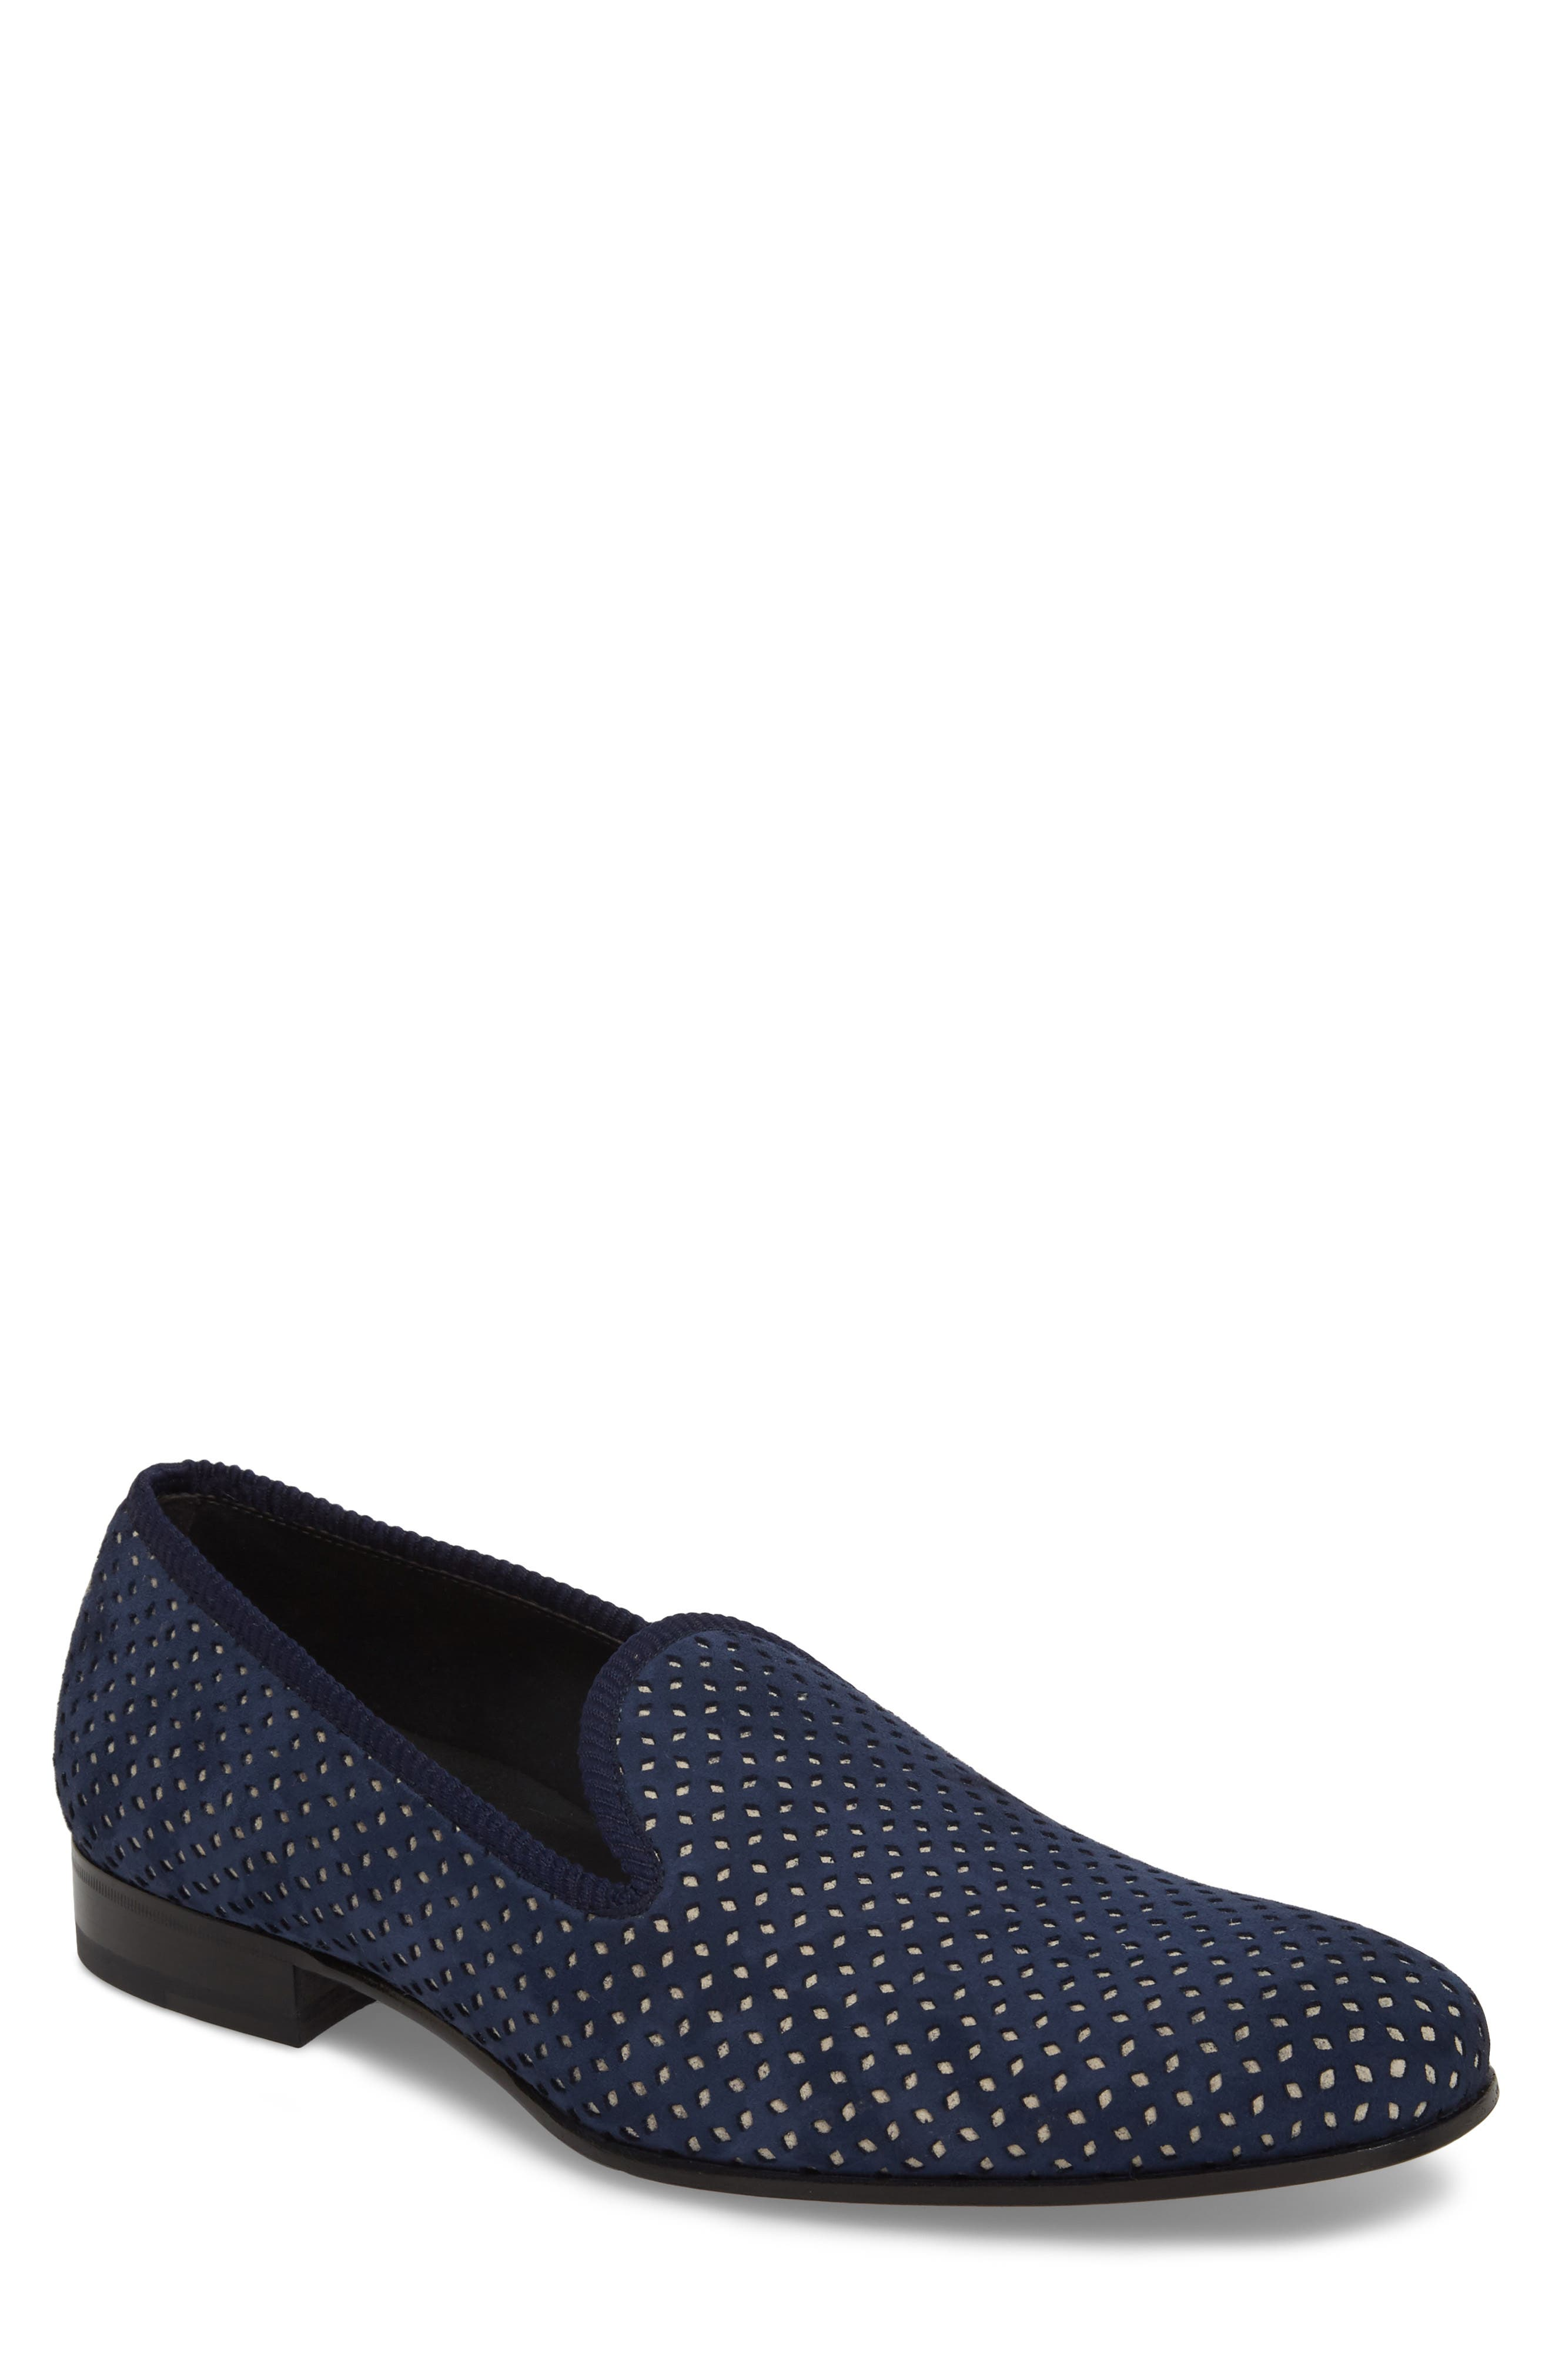 MEZLAN Cibeles Venetian Loafer in Blue/ Bone Suede